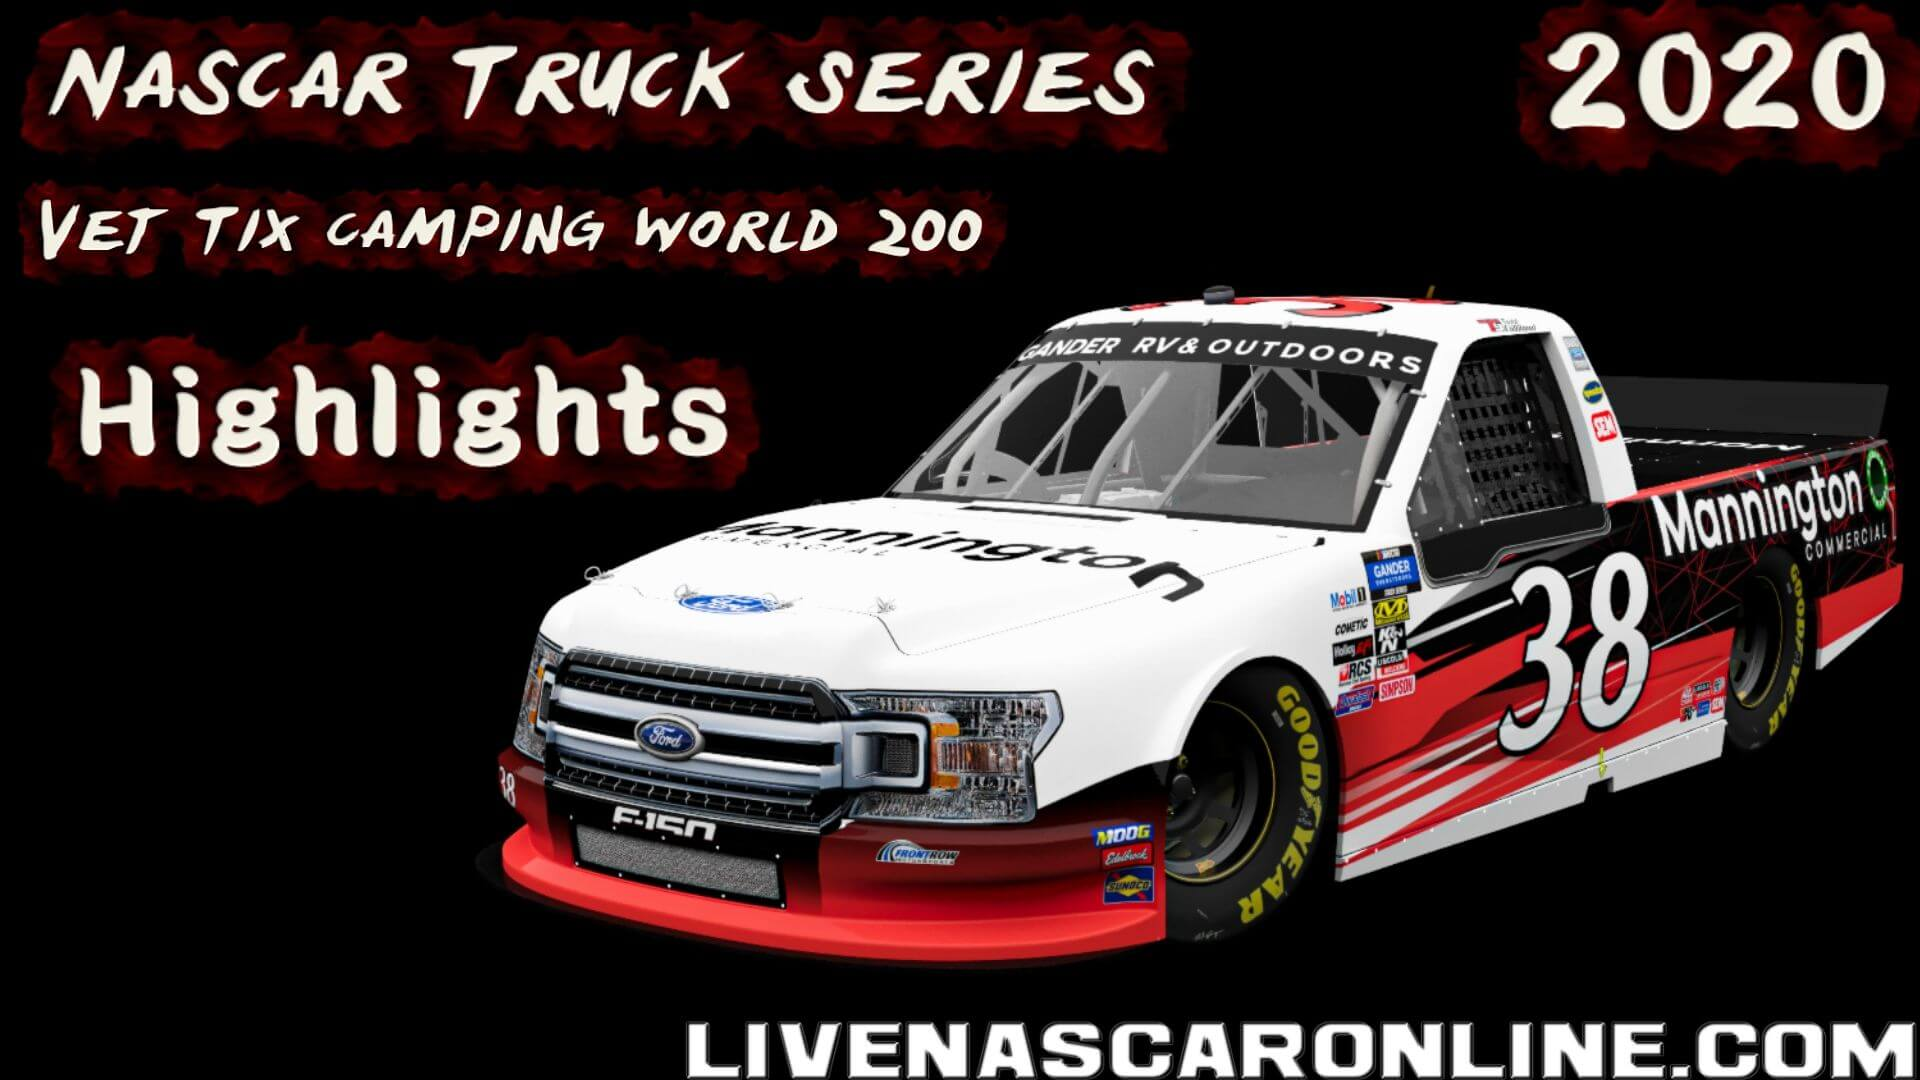 Vet Tix Camping World 200 Truck Series Highlights 2020